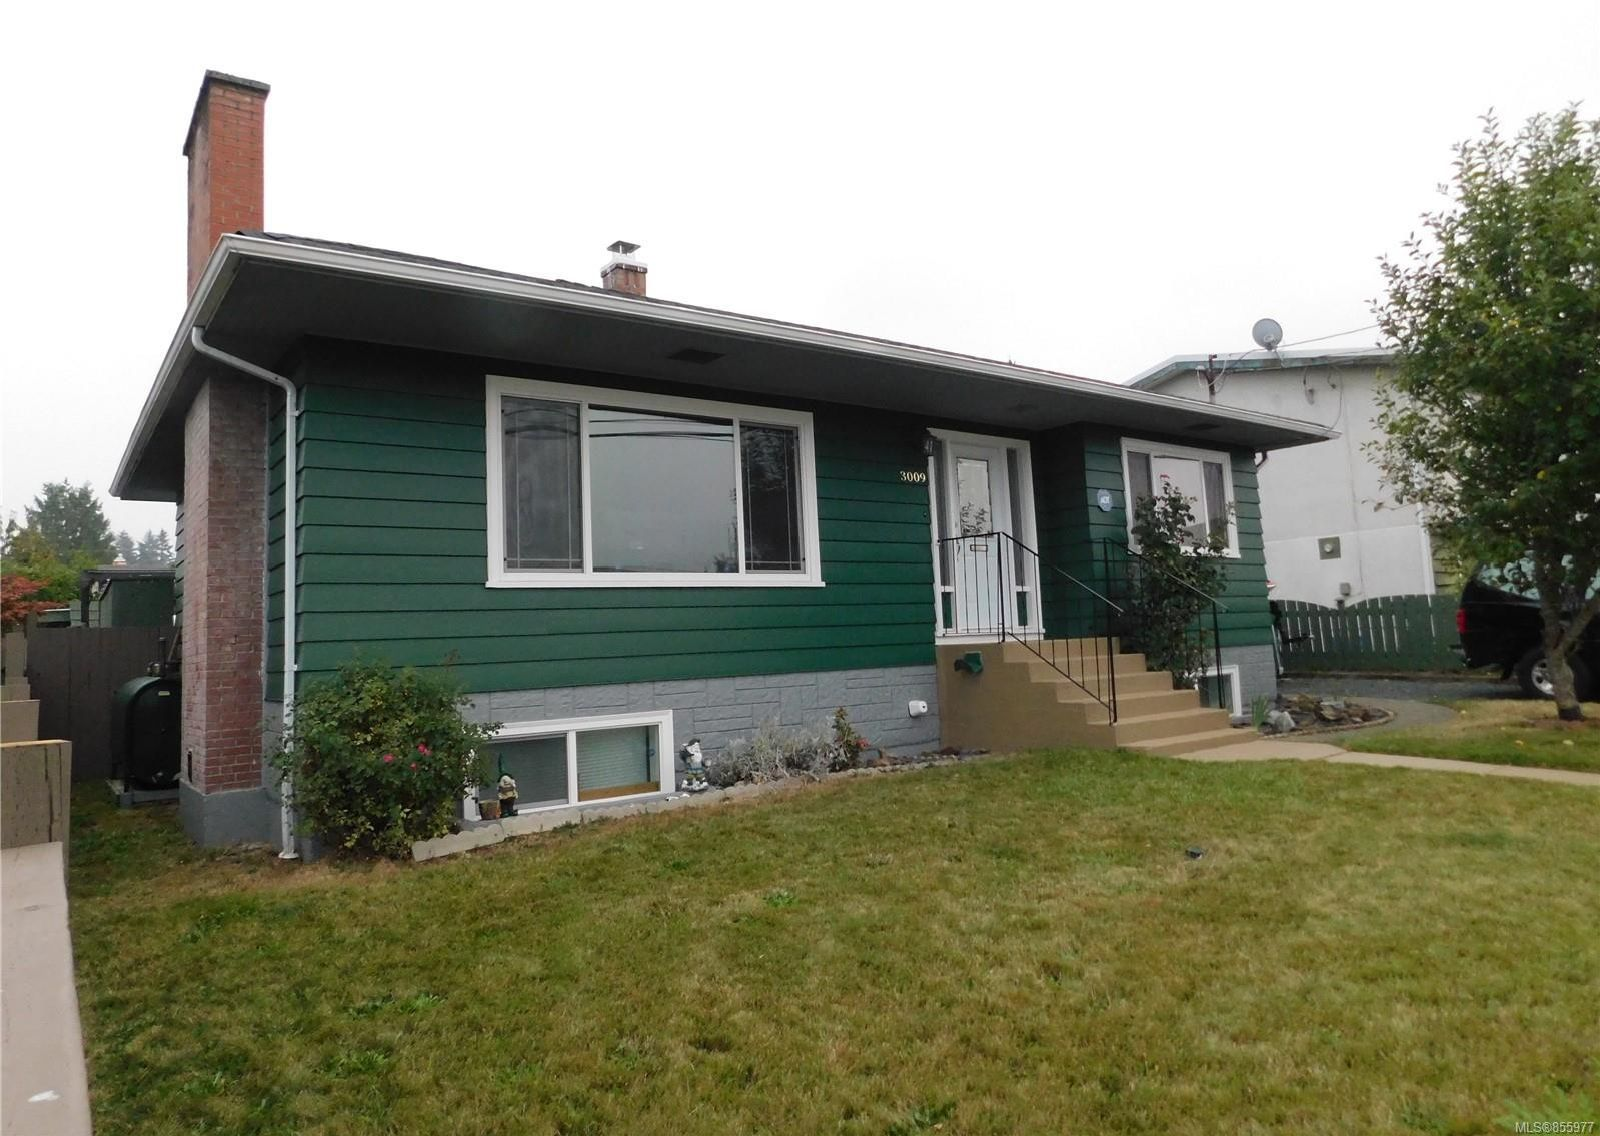 Main Photo: 3009 11TH Ave in : PA Port Alberni House for sale (Port Alberni)  : MLS®# 855977